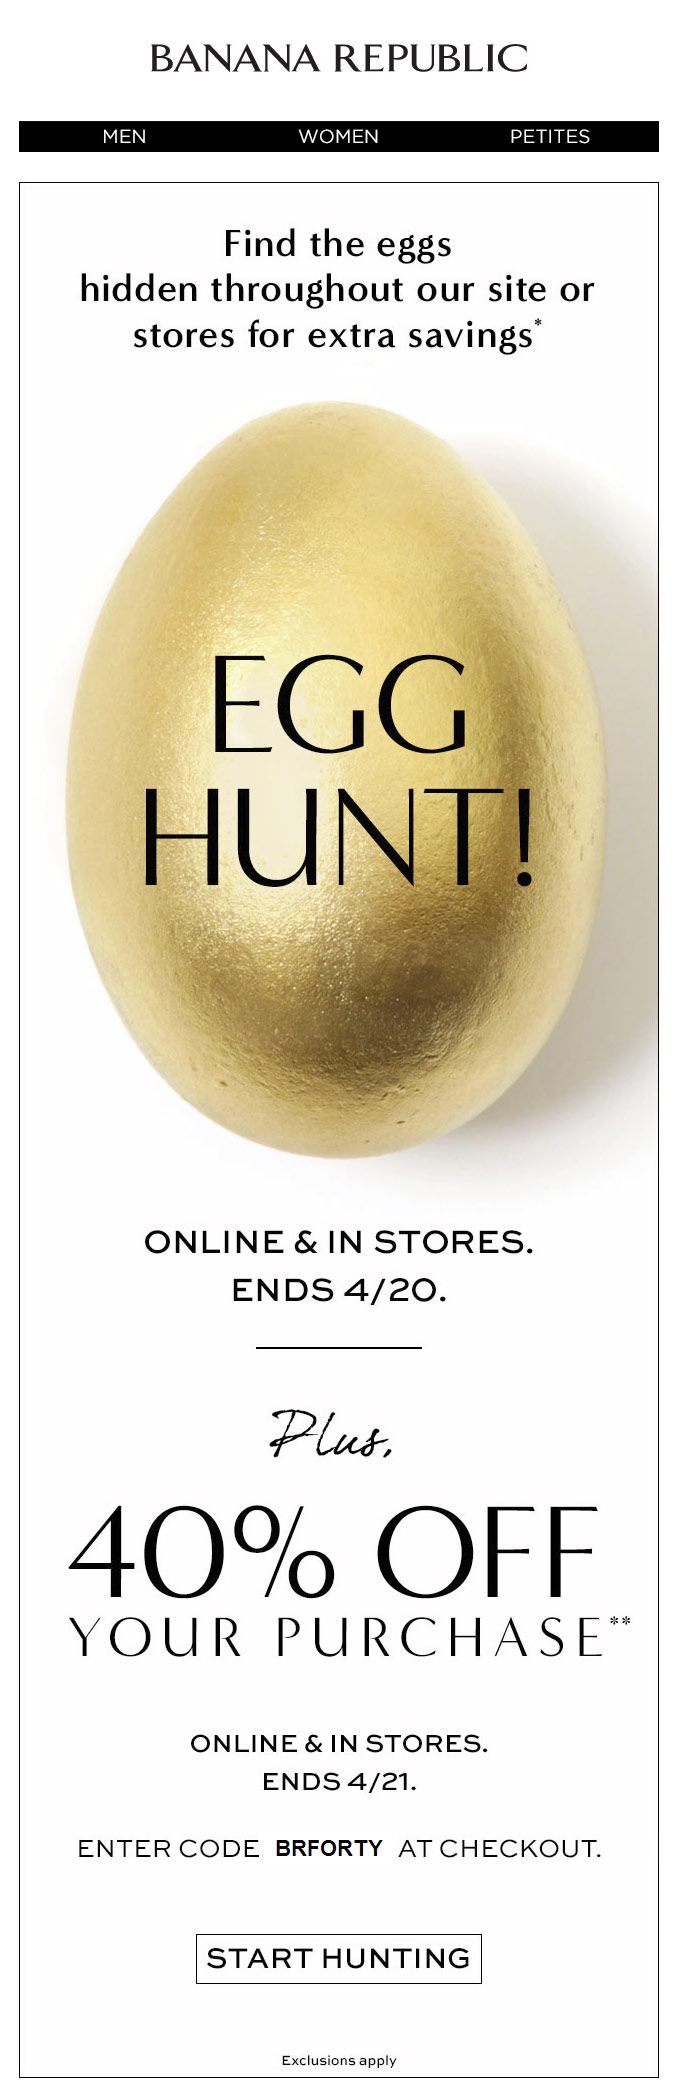 Egg hunt Banana Republic